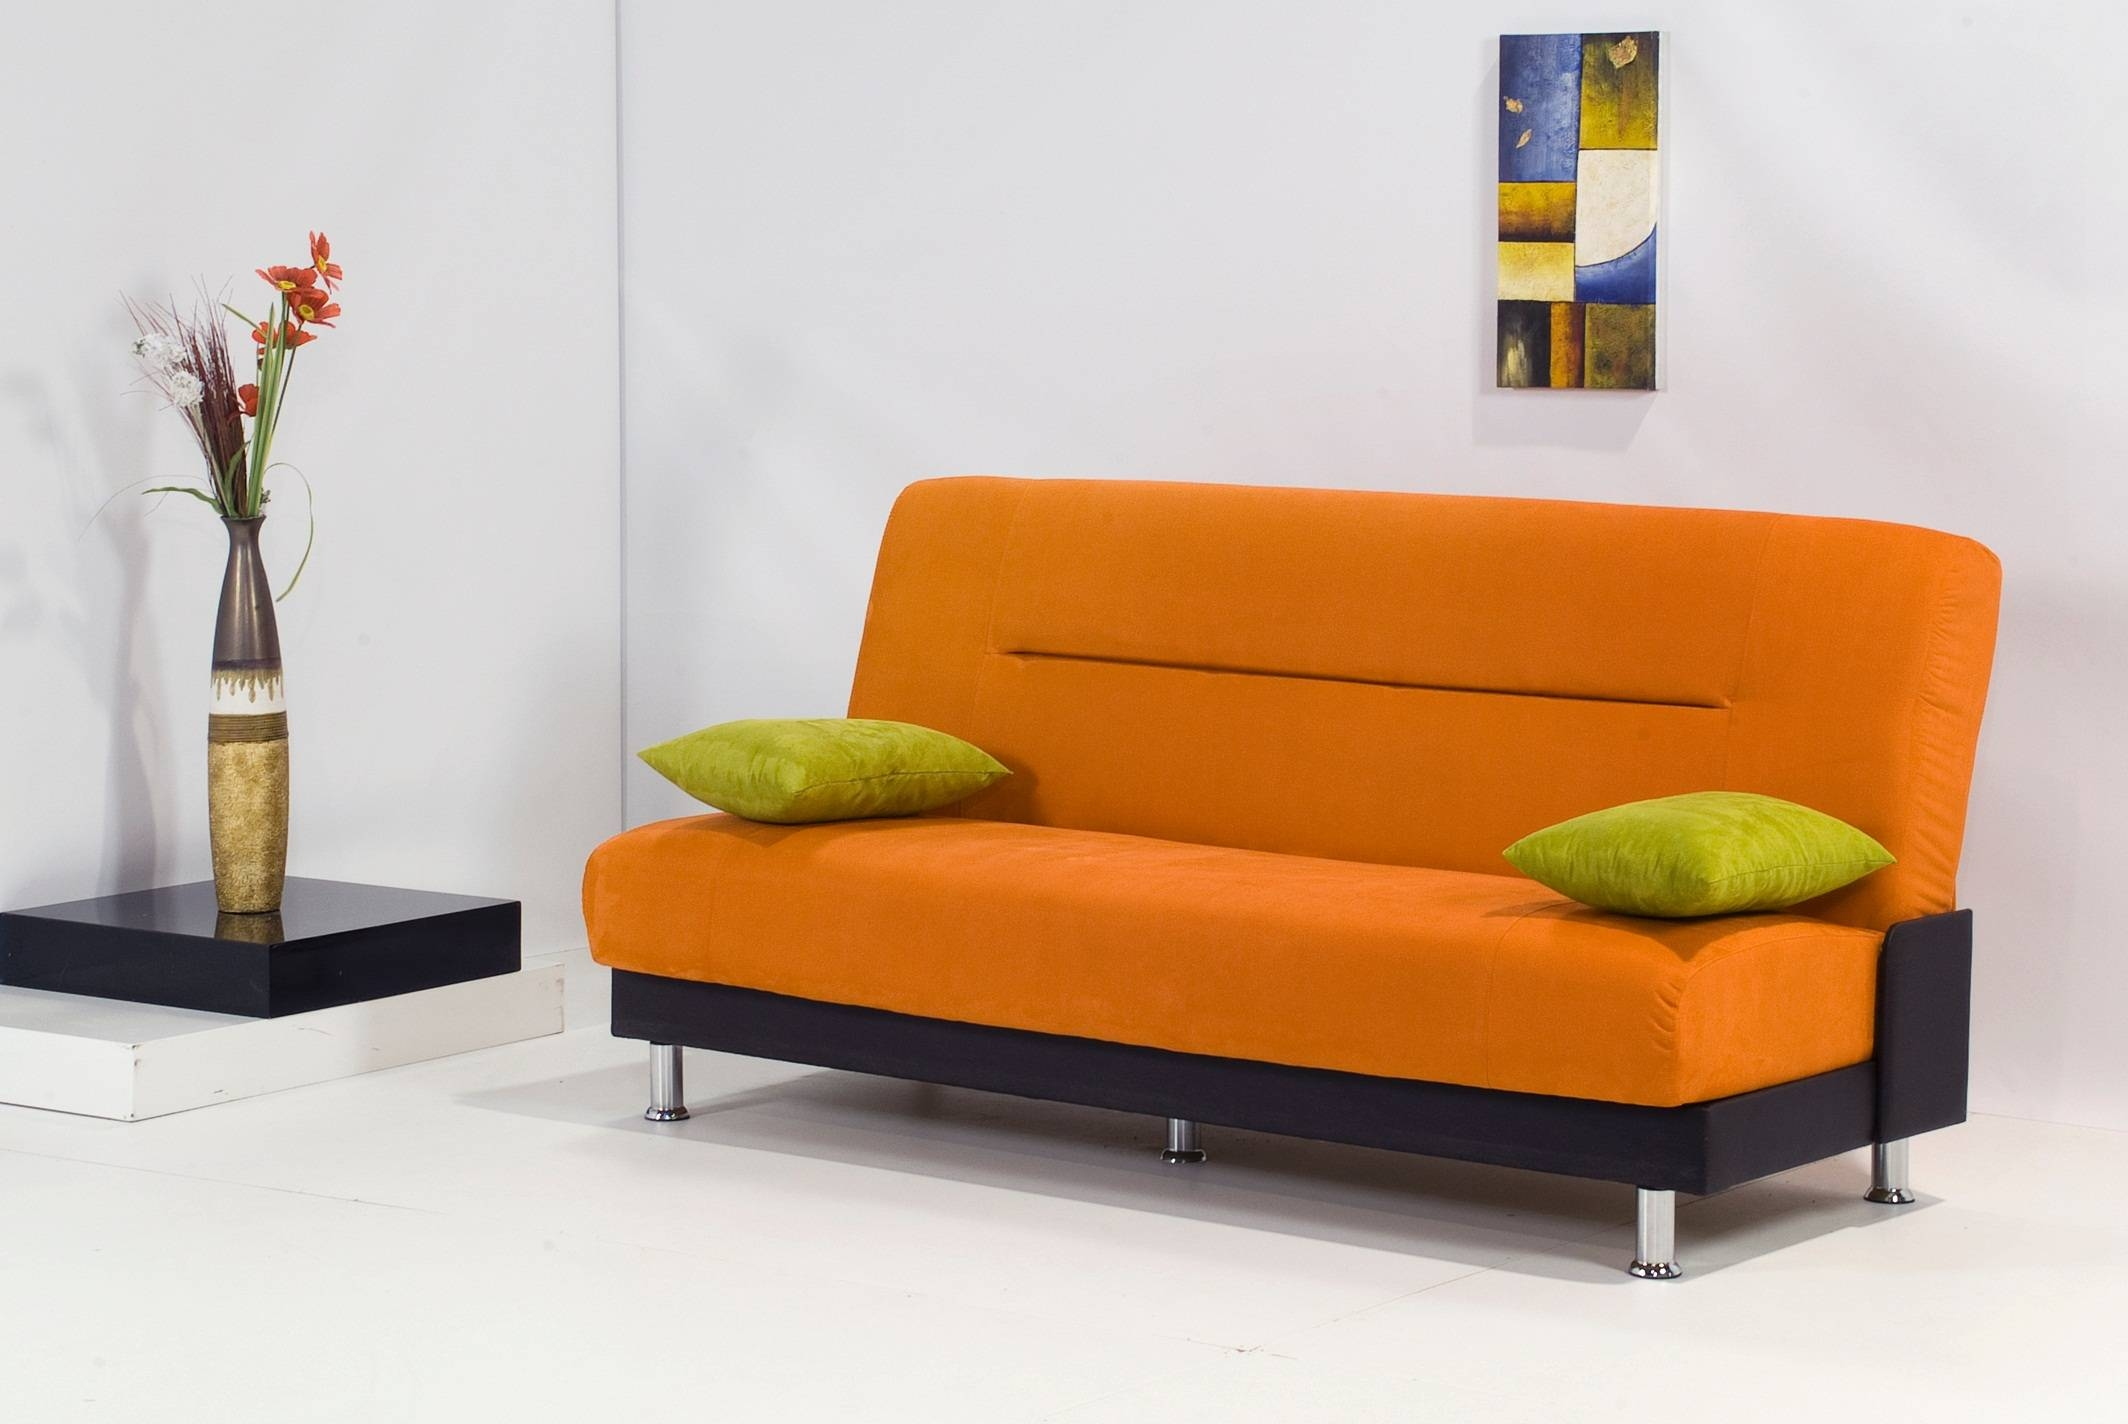 Best Modern Sleeper Sofa With Orange Fabric Cover And Black Cover throughout Orange Modern Sofas (Image 4 of 15)